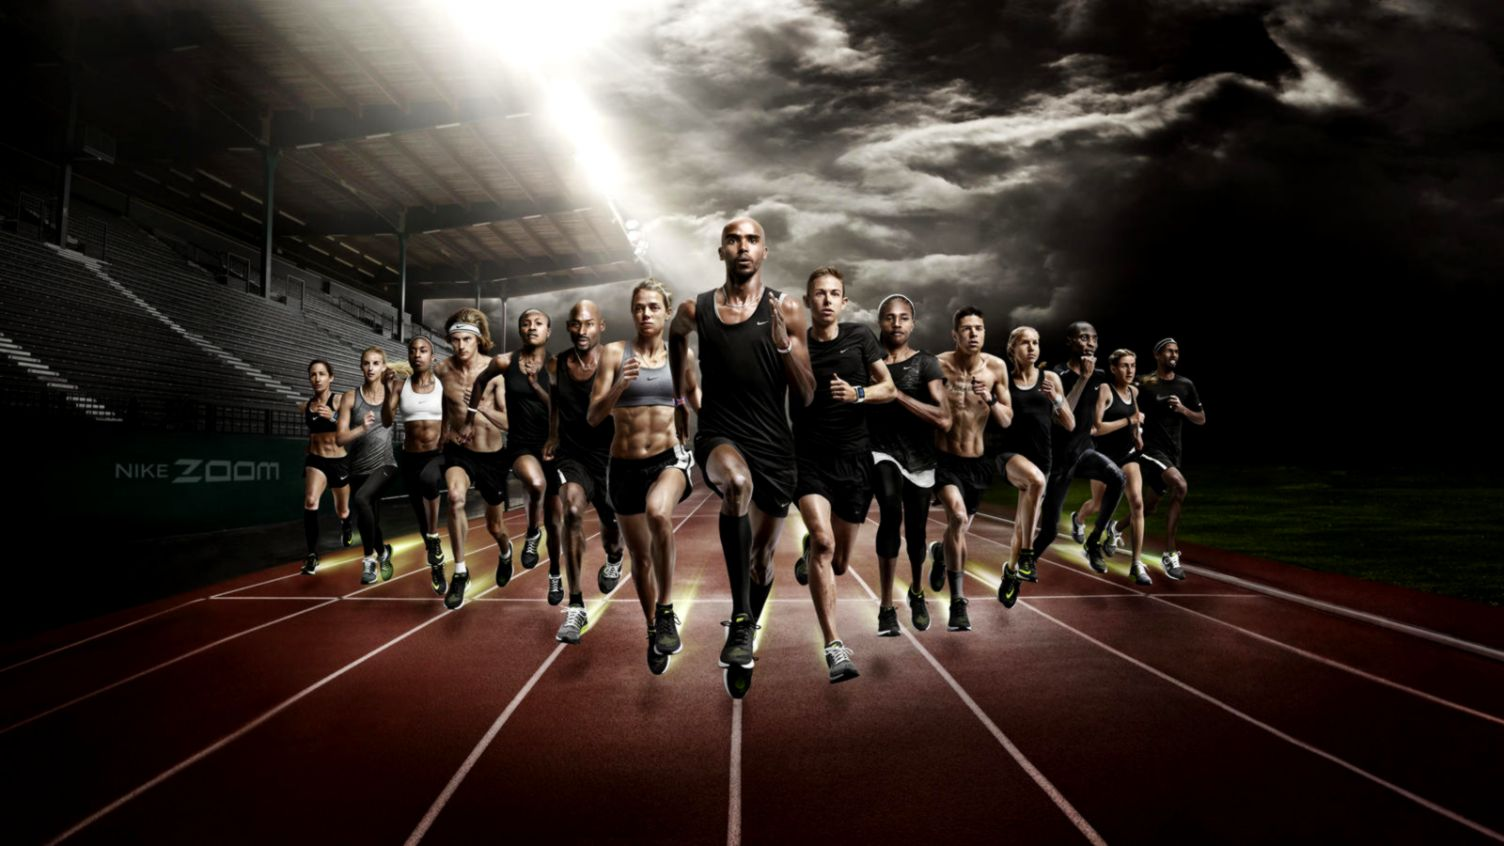 Running Sports Wallpaper Hd Wallpapers Images